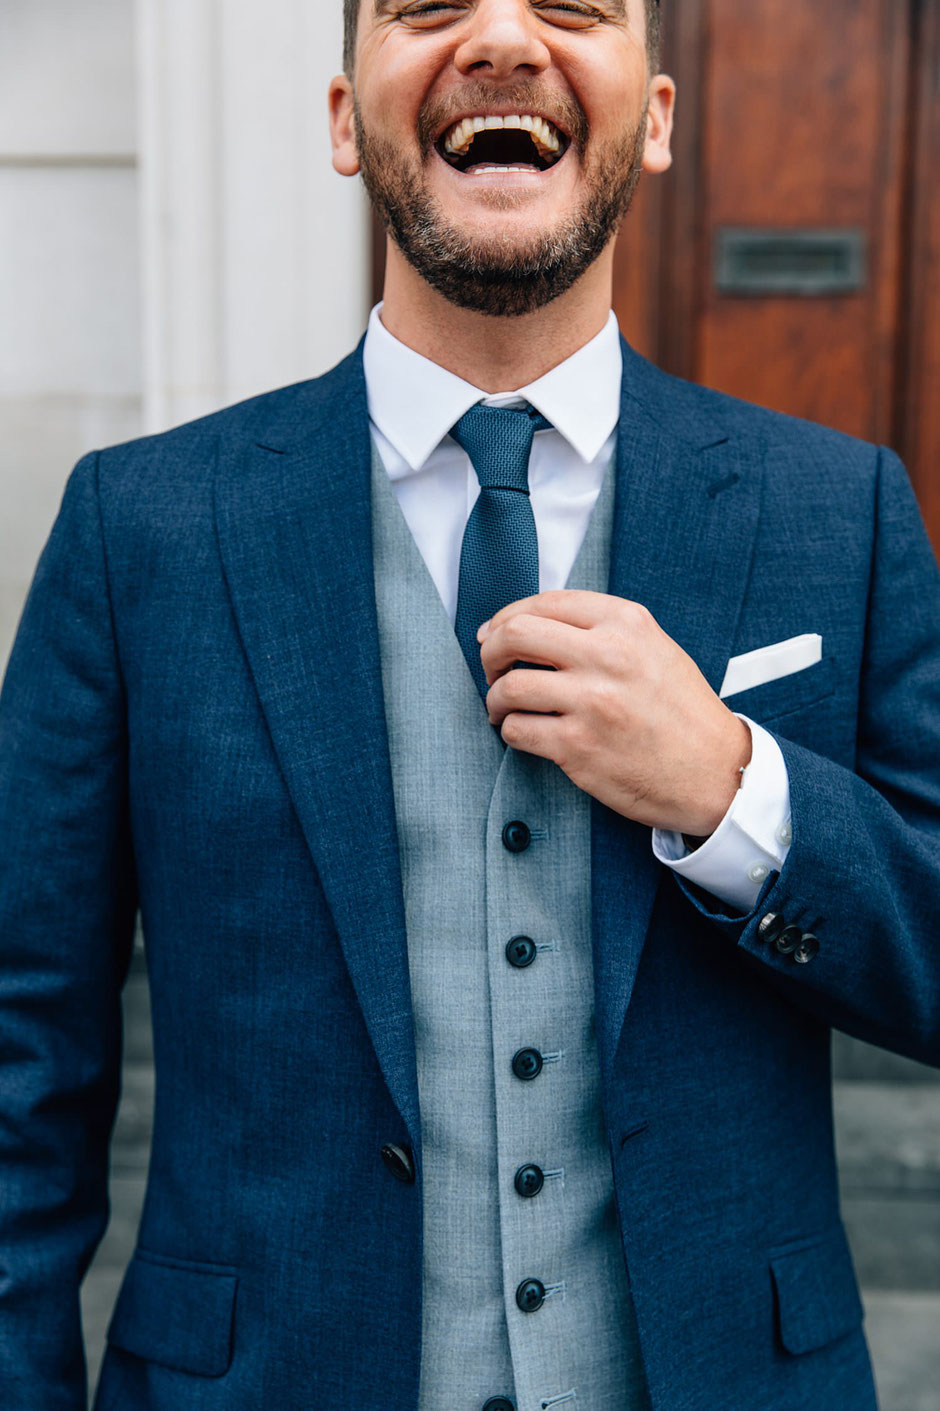 a portrait of a groom dressed in a blue and grey suit laughing whilst touching his tie